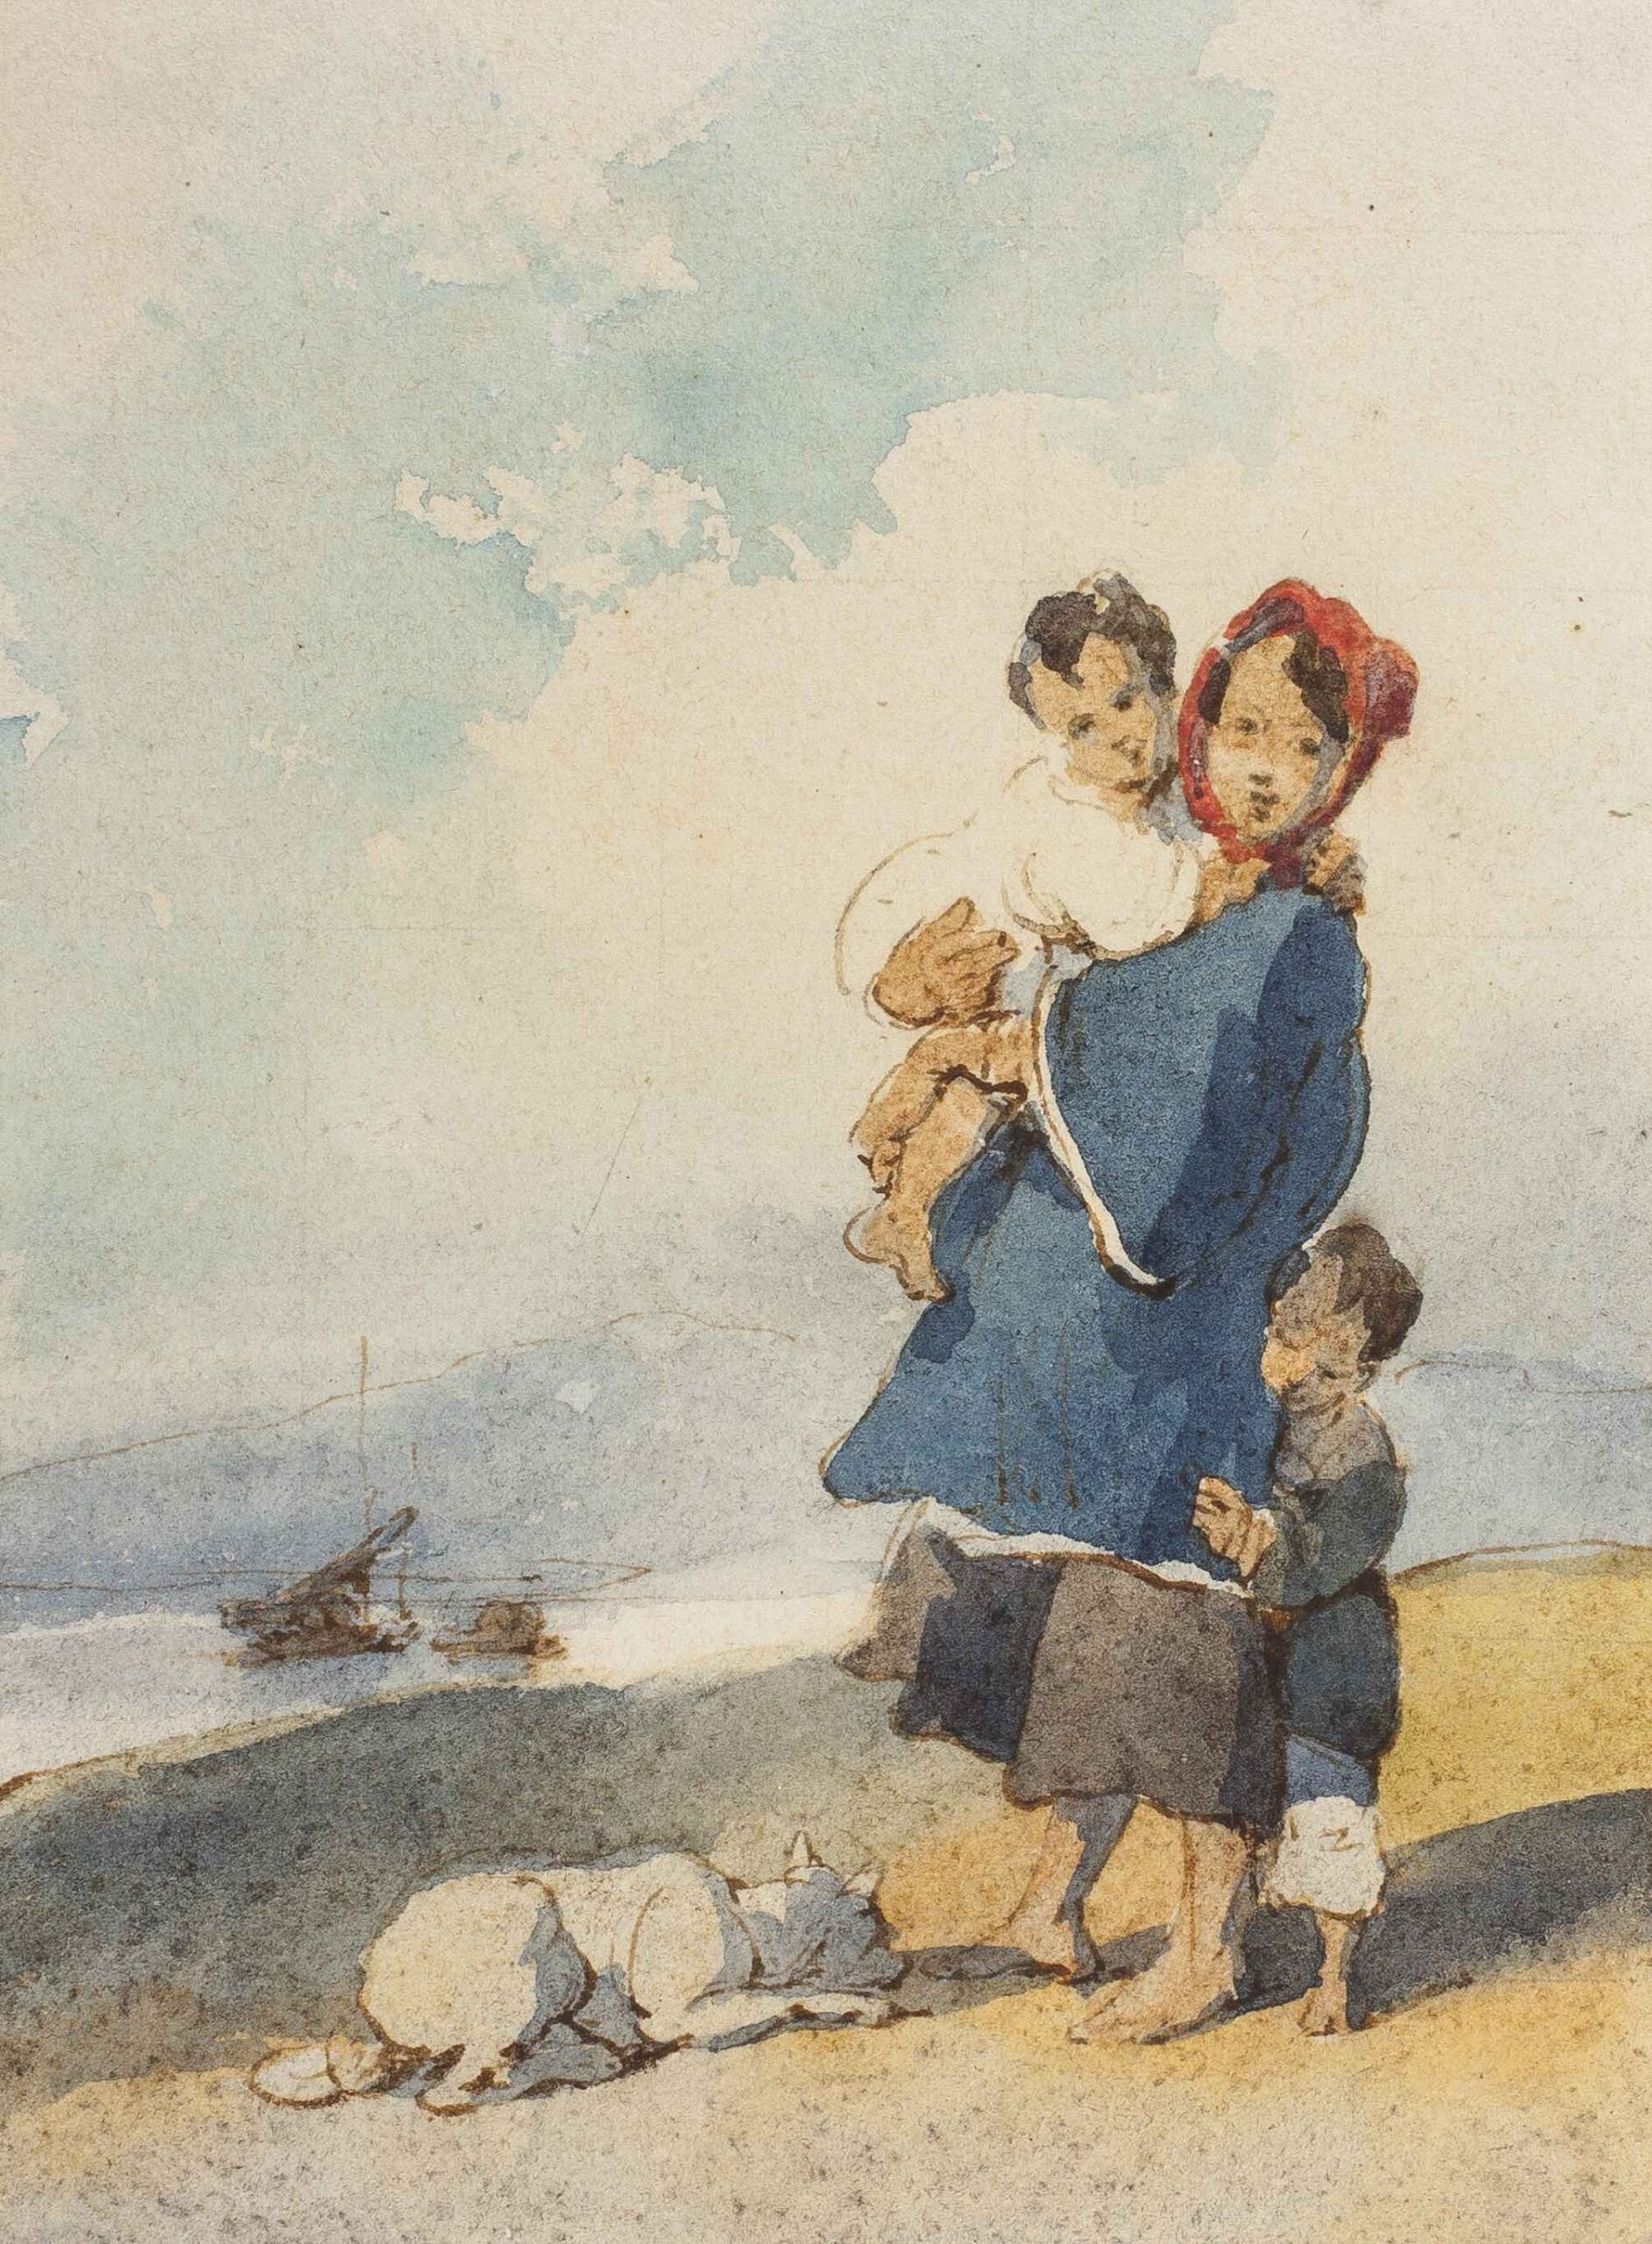 George Chinnery (1774 - 1852) A boatwoman and her children, Macau | Pen and ink and watercolour, 6 x 4 1/4 in (15.2 x 10.7 cm)